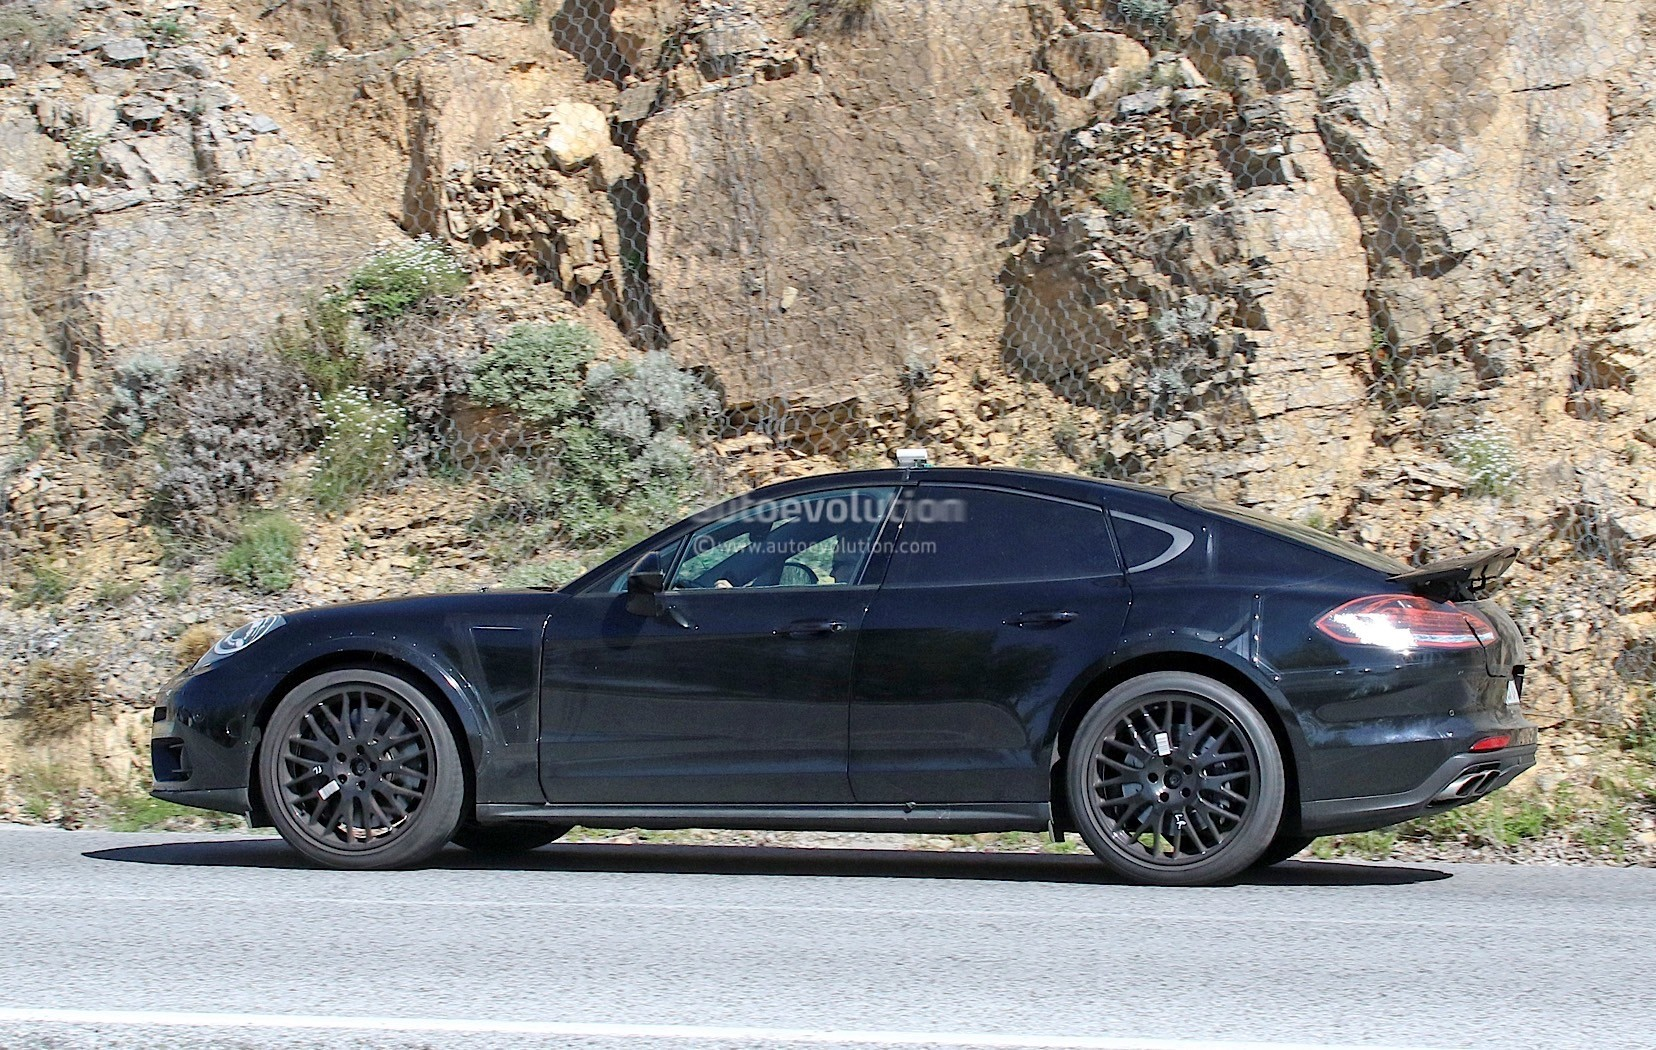 Electric Kids Cars >> 2018 Porsche Panamera-Based Coupe Spied For the First Time - autoevolution